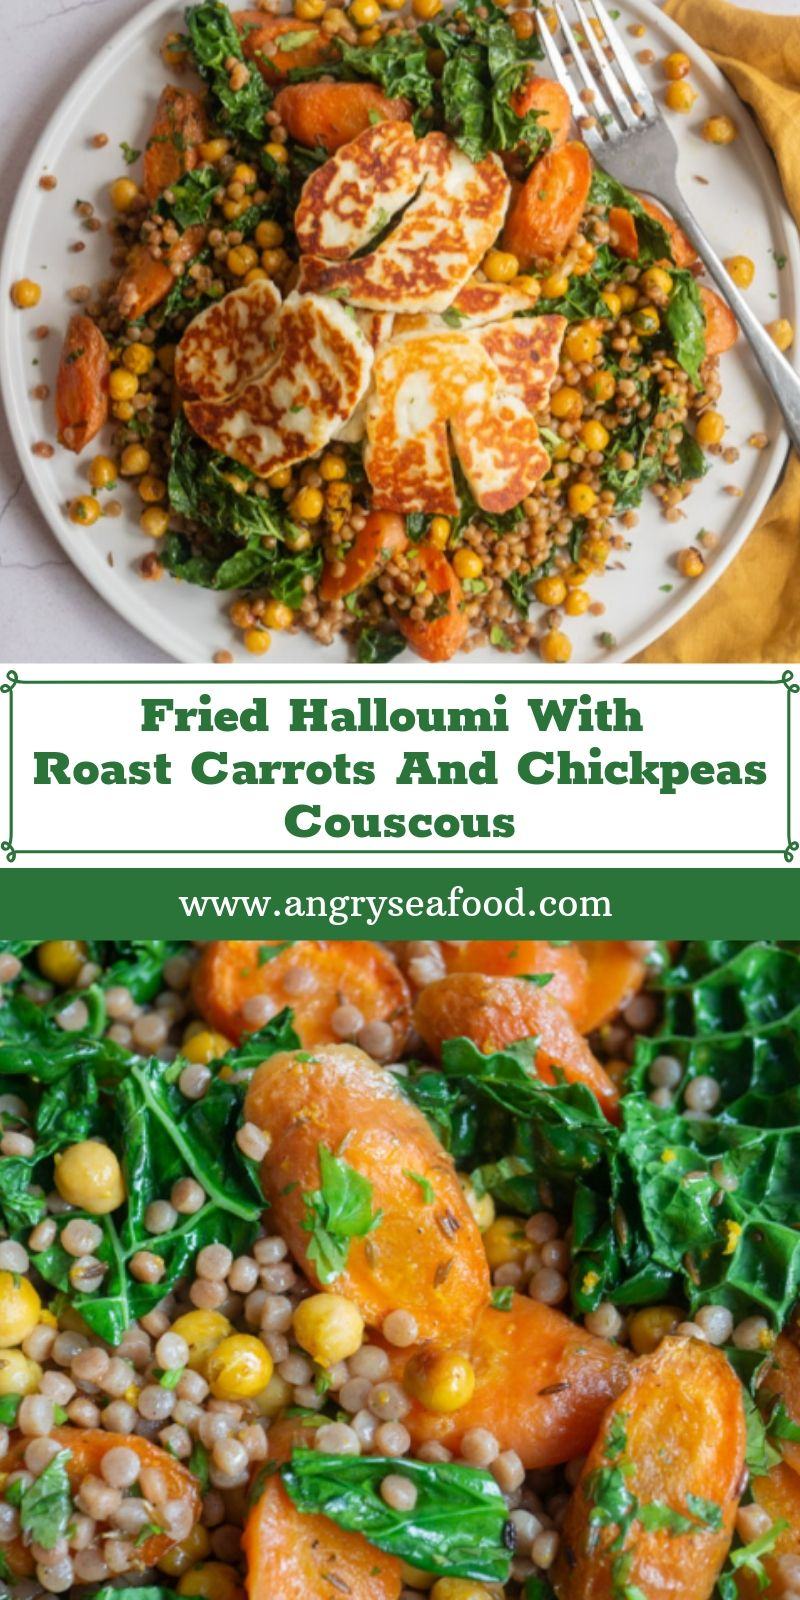 Fried Halloumi With Roast Carrots And Chickpeas Couscous